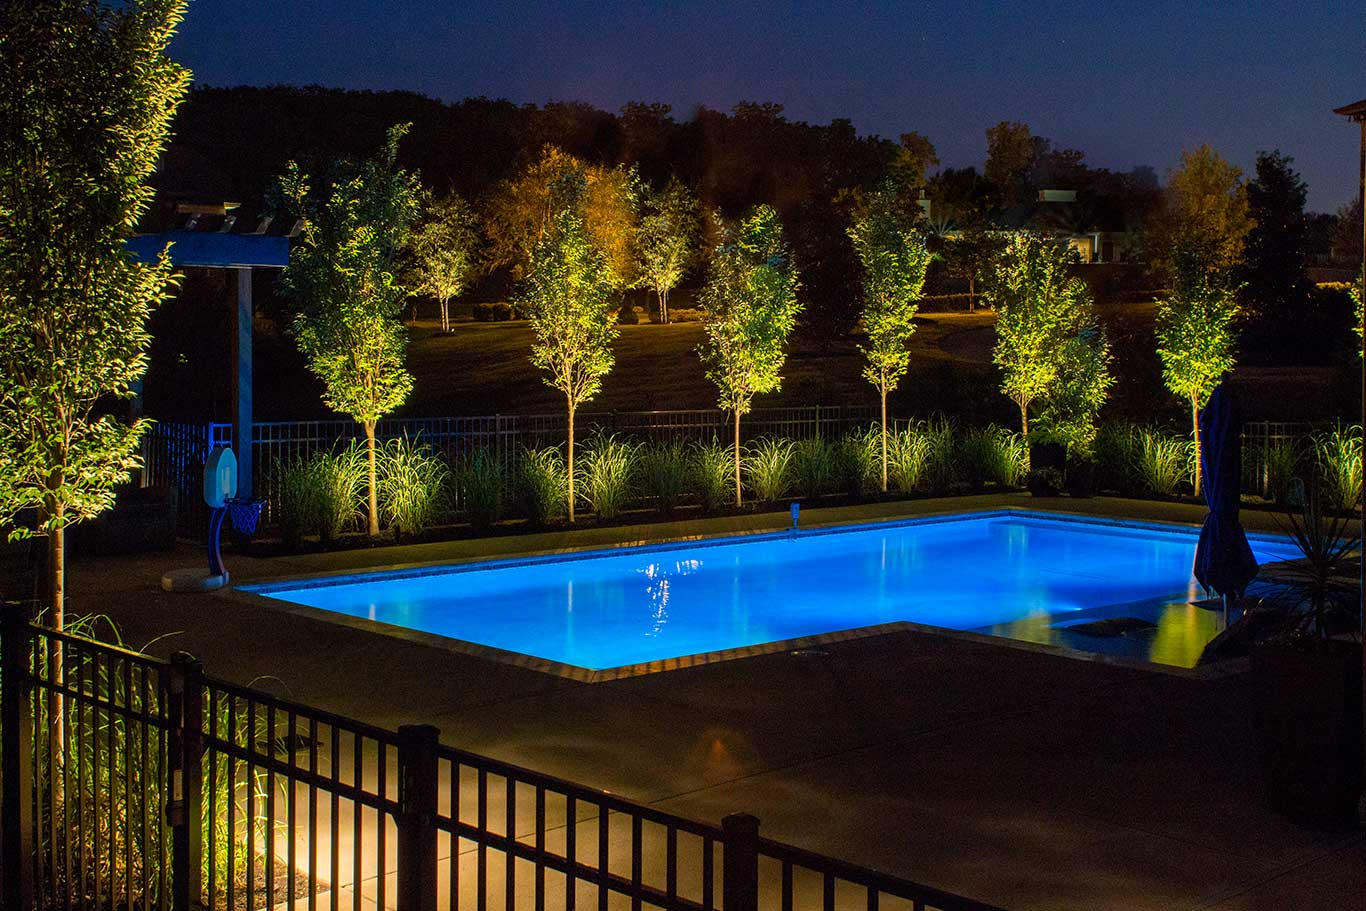 Amazing Landscape Lighting By Blue Pool